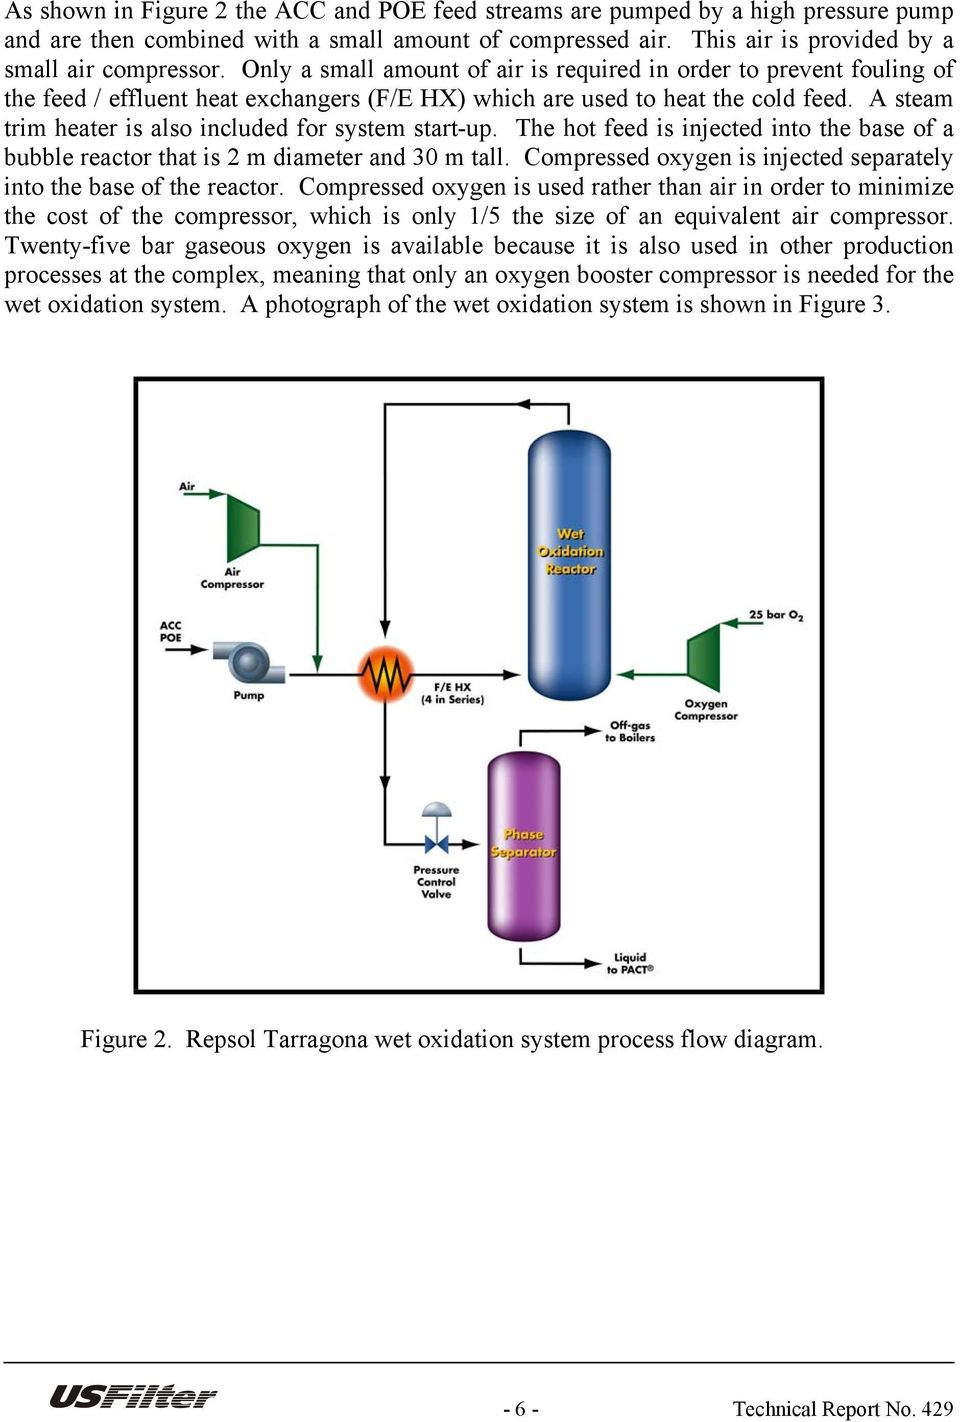 Process Flow Diagram Reactor By Juan Pedrerol Gallego Repsol Quimica Sa Tarragona Spain A Steam Trim Heater Is Also Included For System Start Up The Hot Feed